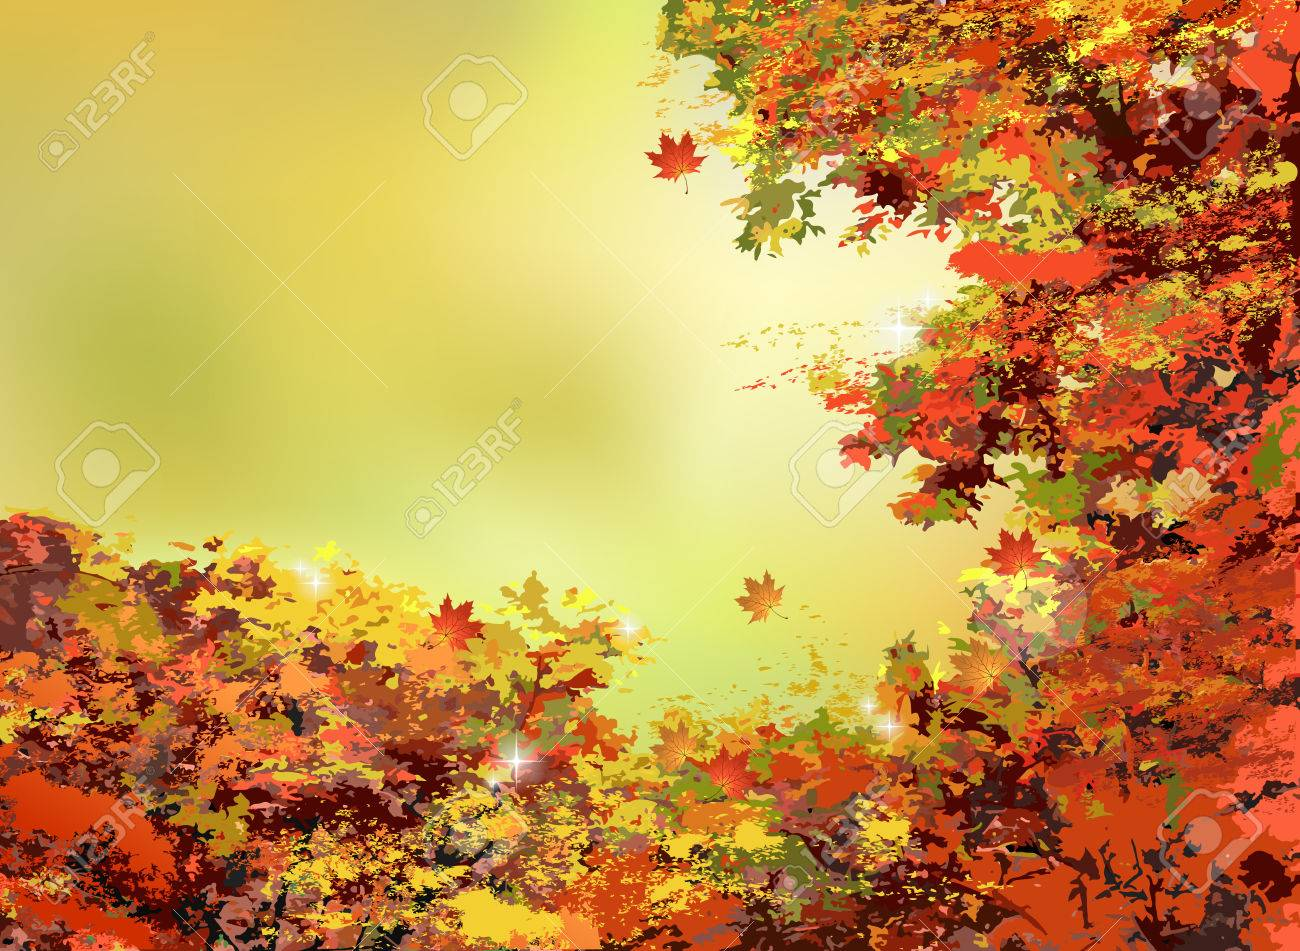 autumn scenery background with yellow, orange, red leaves and